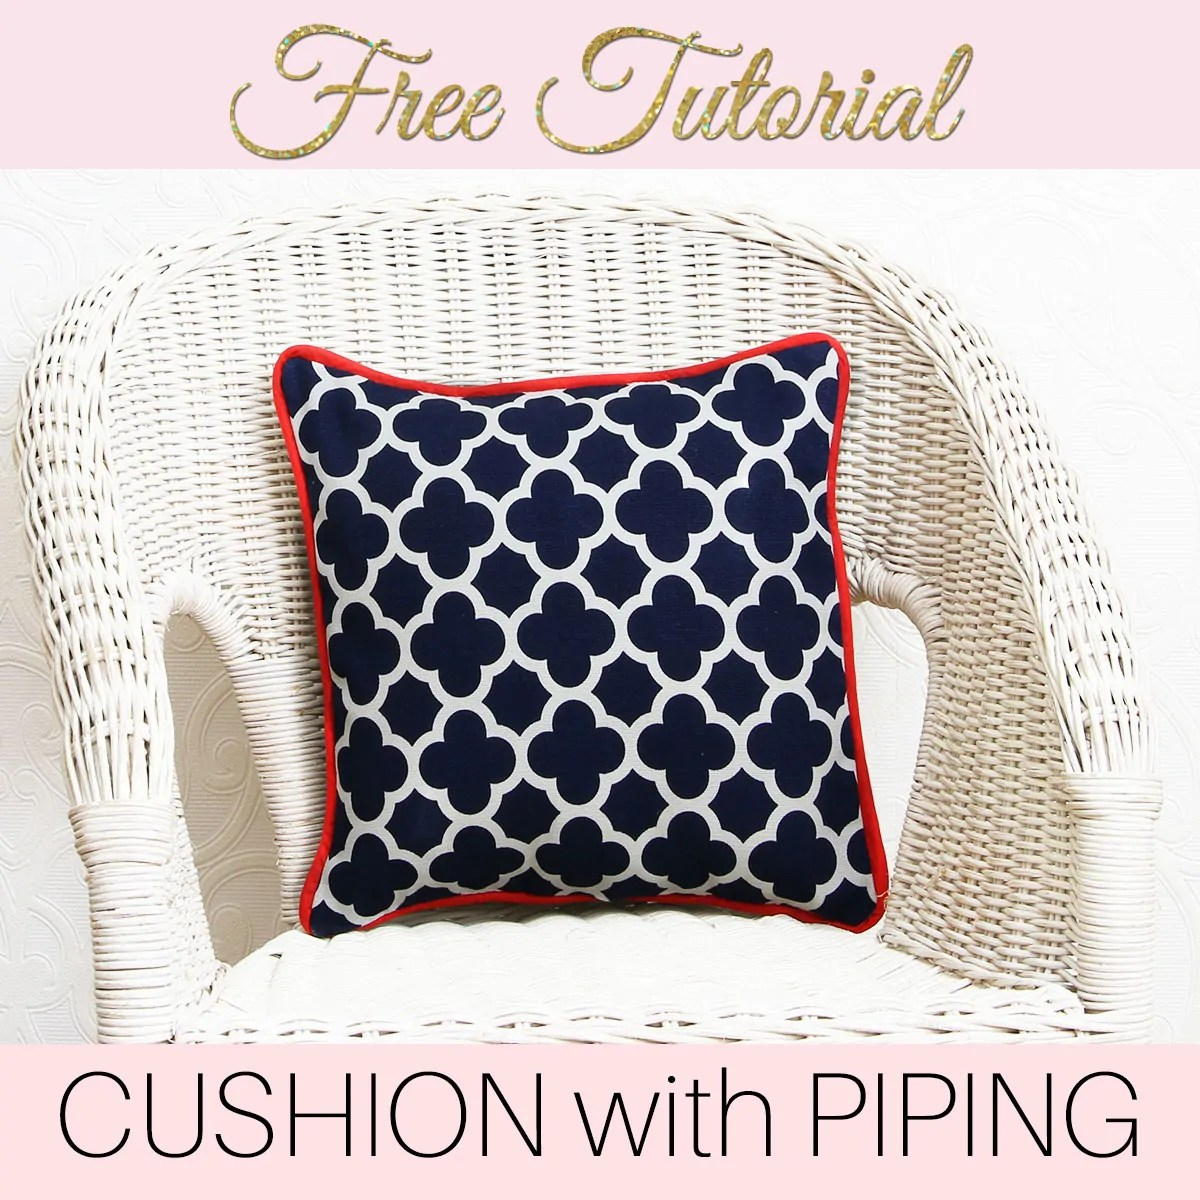 Make a Cushion Cover with Piping - Cushion Cover Patterns & Christmas Pillows DIY - Pretty Cover with Tree Applique |TREASURIE pillowsntoast.com